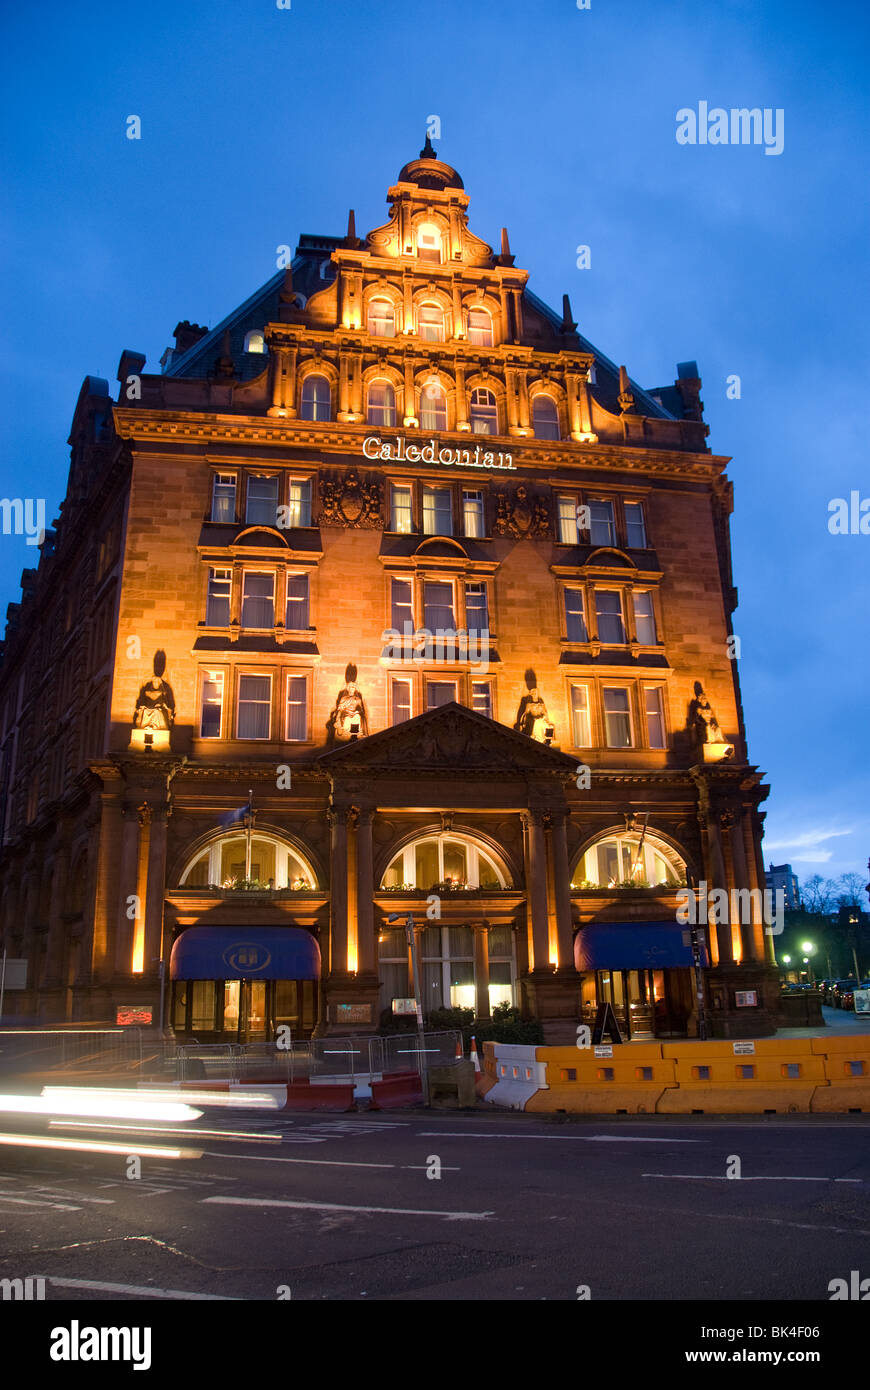 Caledonian Hotel Edinburgh Stock Photo 28988406 Alamy